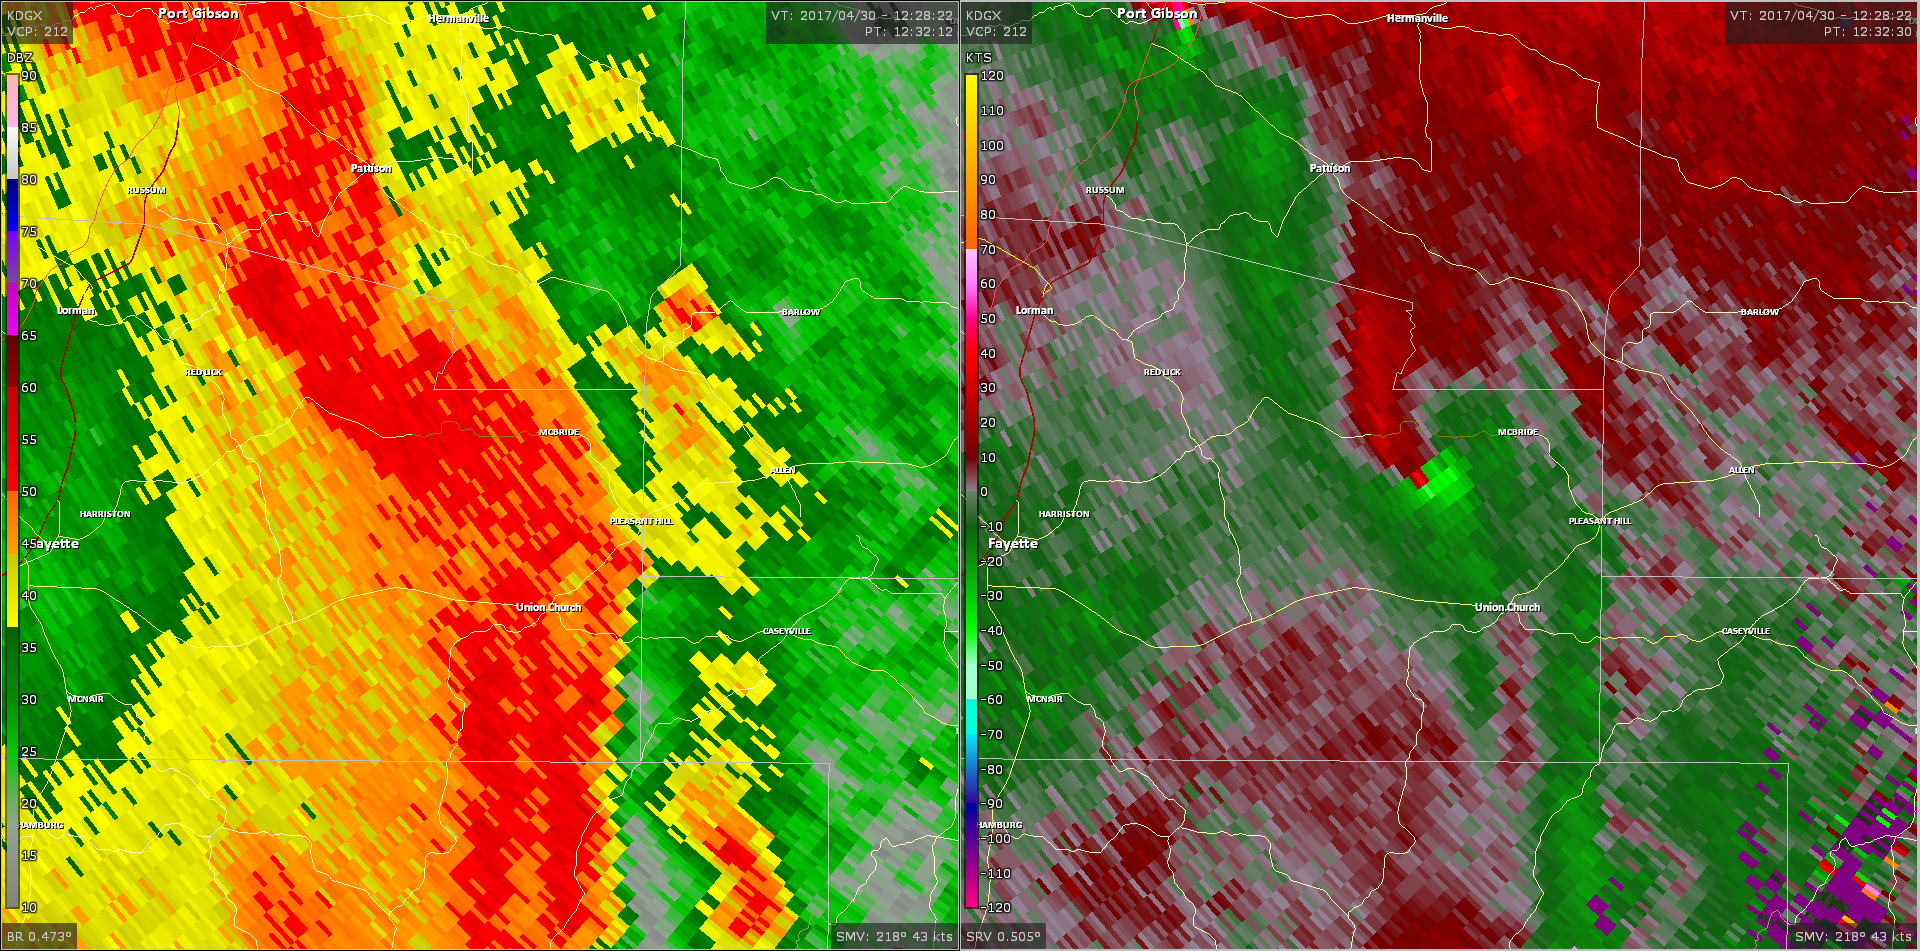 Radar - Jefferson County Tornado